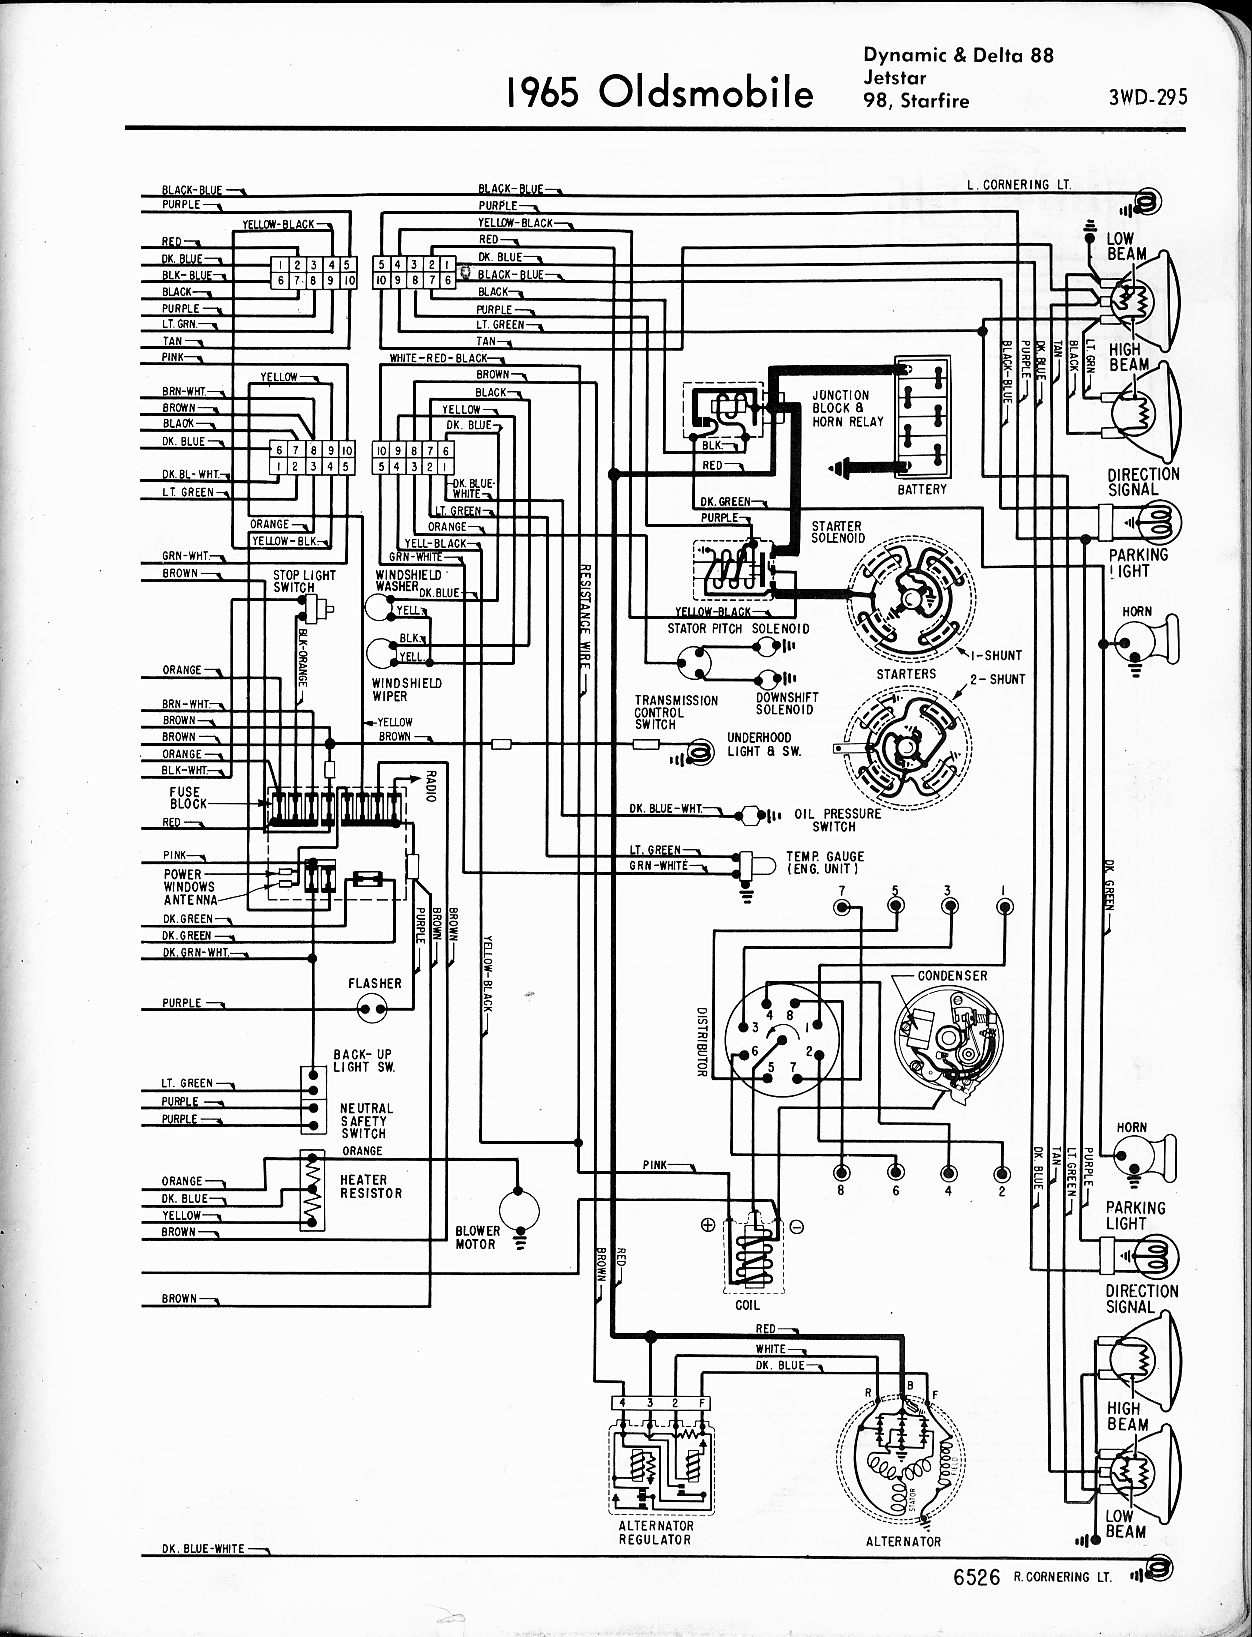 1998 Oldsmobile Delta 88 Fuse Diagram Simple Wiring Crown Victoria For Professional U2022 Ford